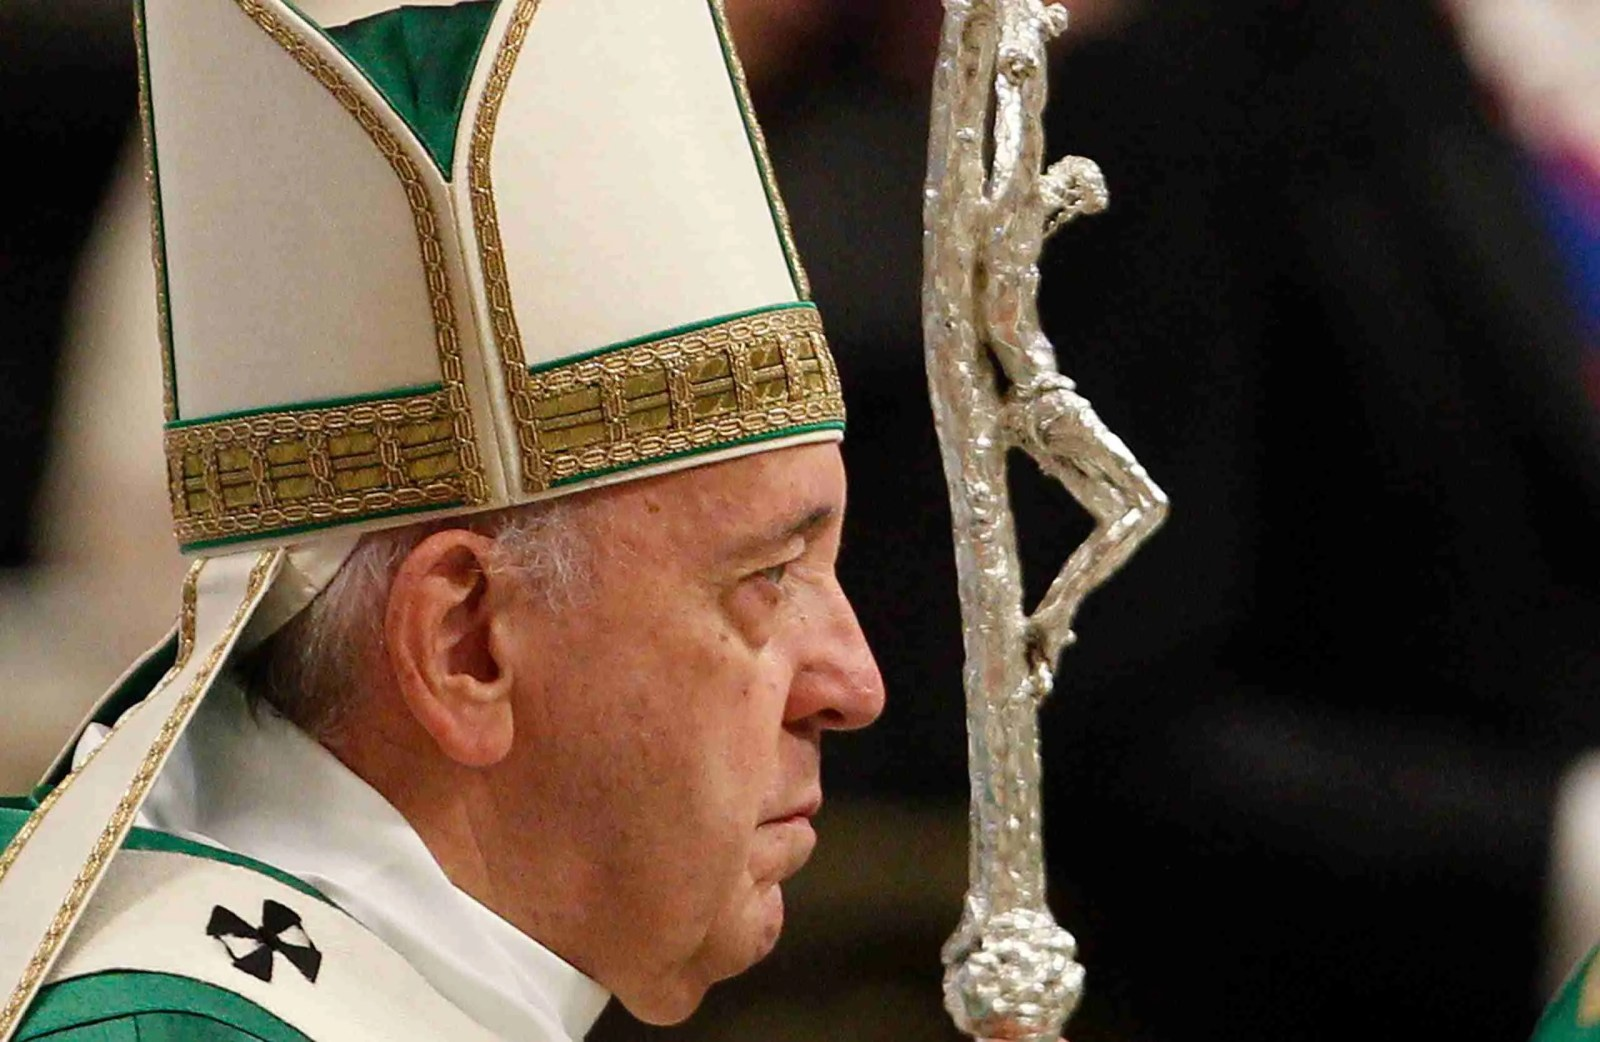 Catholic Bishop Hired by Pope Francis to Investigate Child Abuse is Accused of Sexual Abuse 7